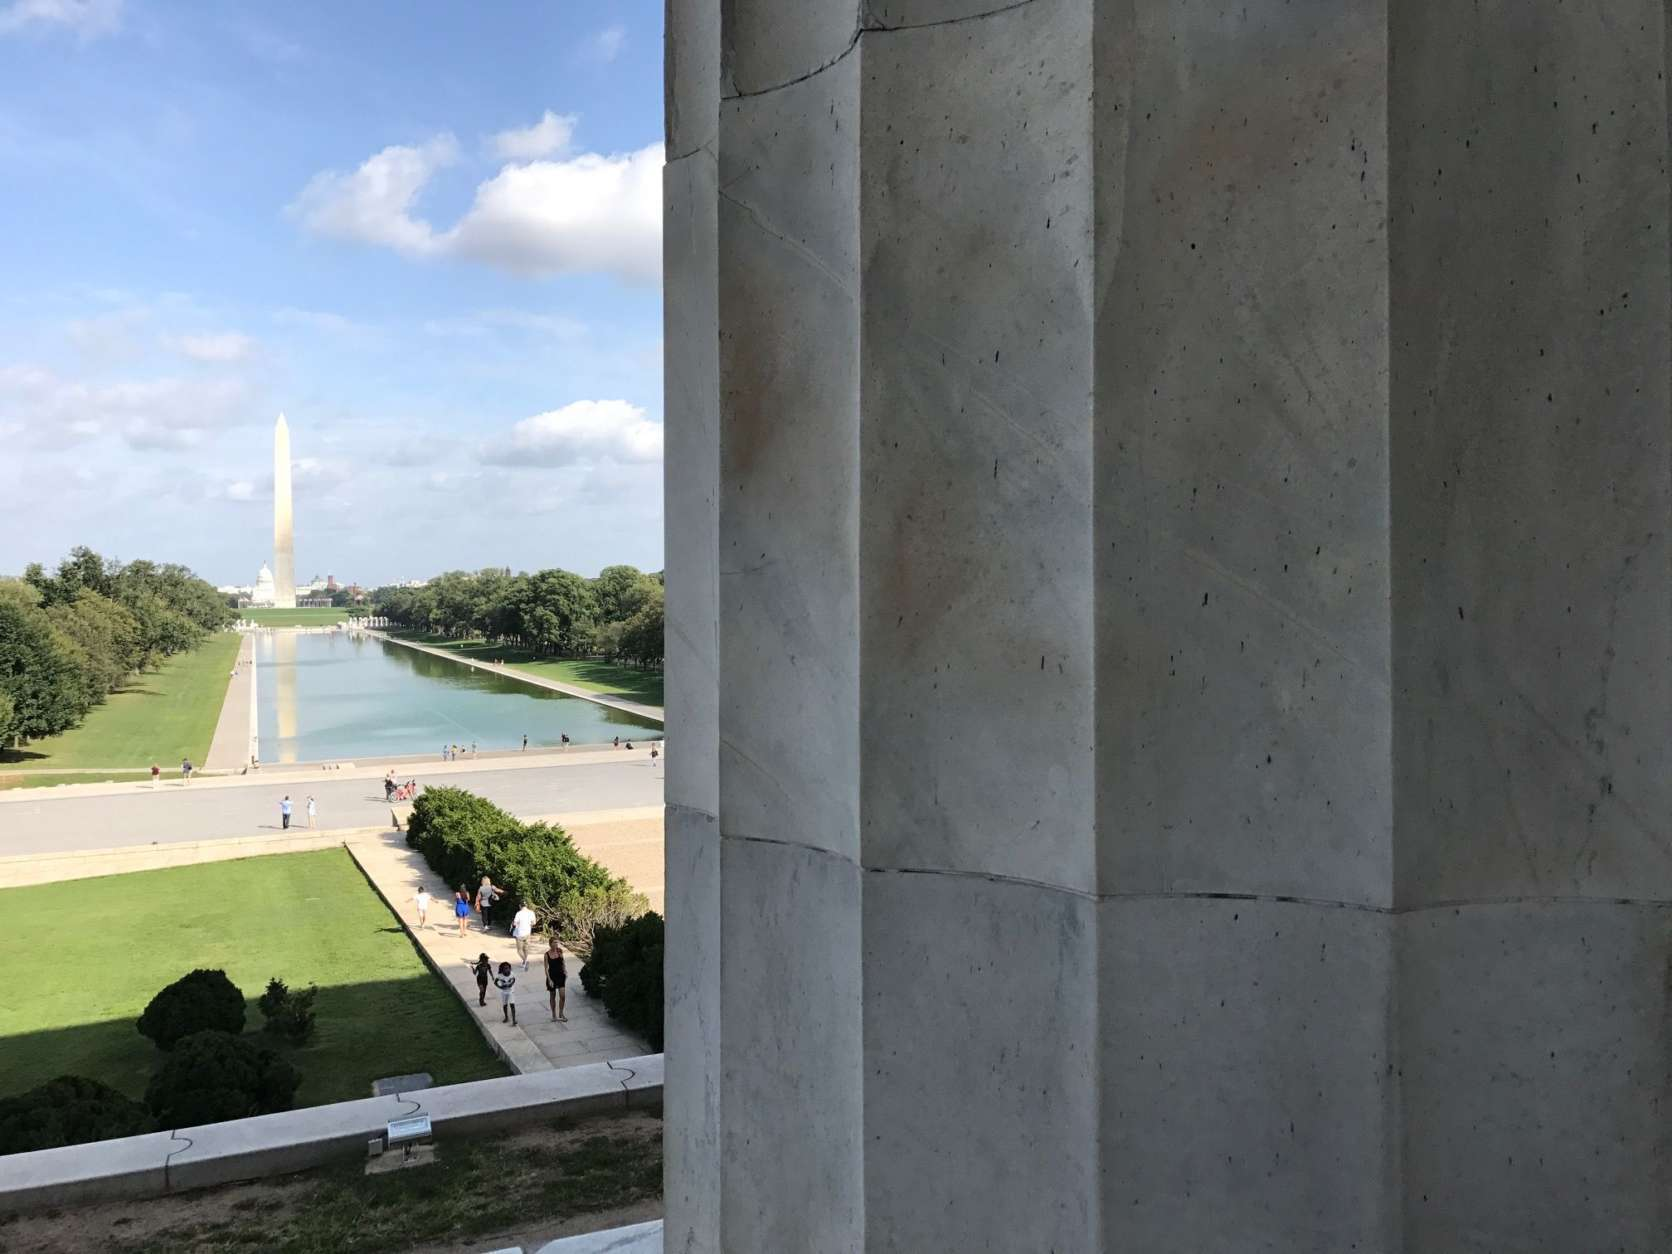 A view from the Lincoln Memorial toward the Washington Monument Tuesday. A man from the Kyrgyz Republic was arrested Monday on charges of defacing the Lincoln Memorial. National Park officials said the penny he used to etch letters into a stone pillar caused permanent damage. (WTOP/Megan Cloherty)